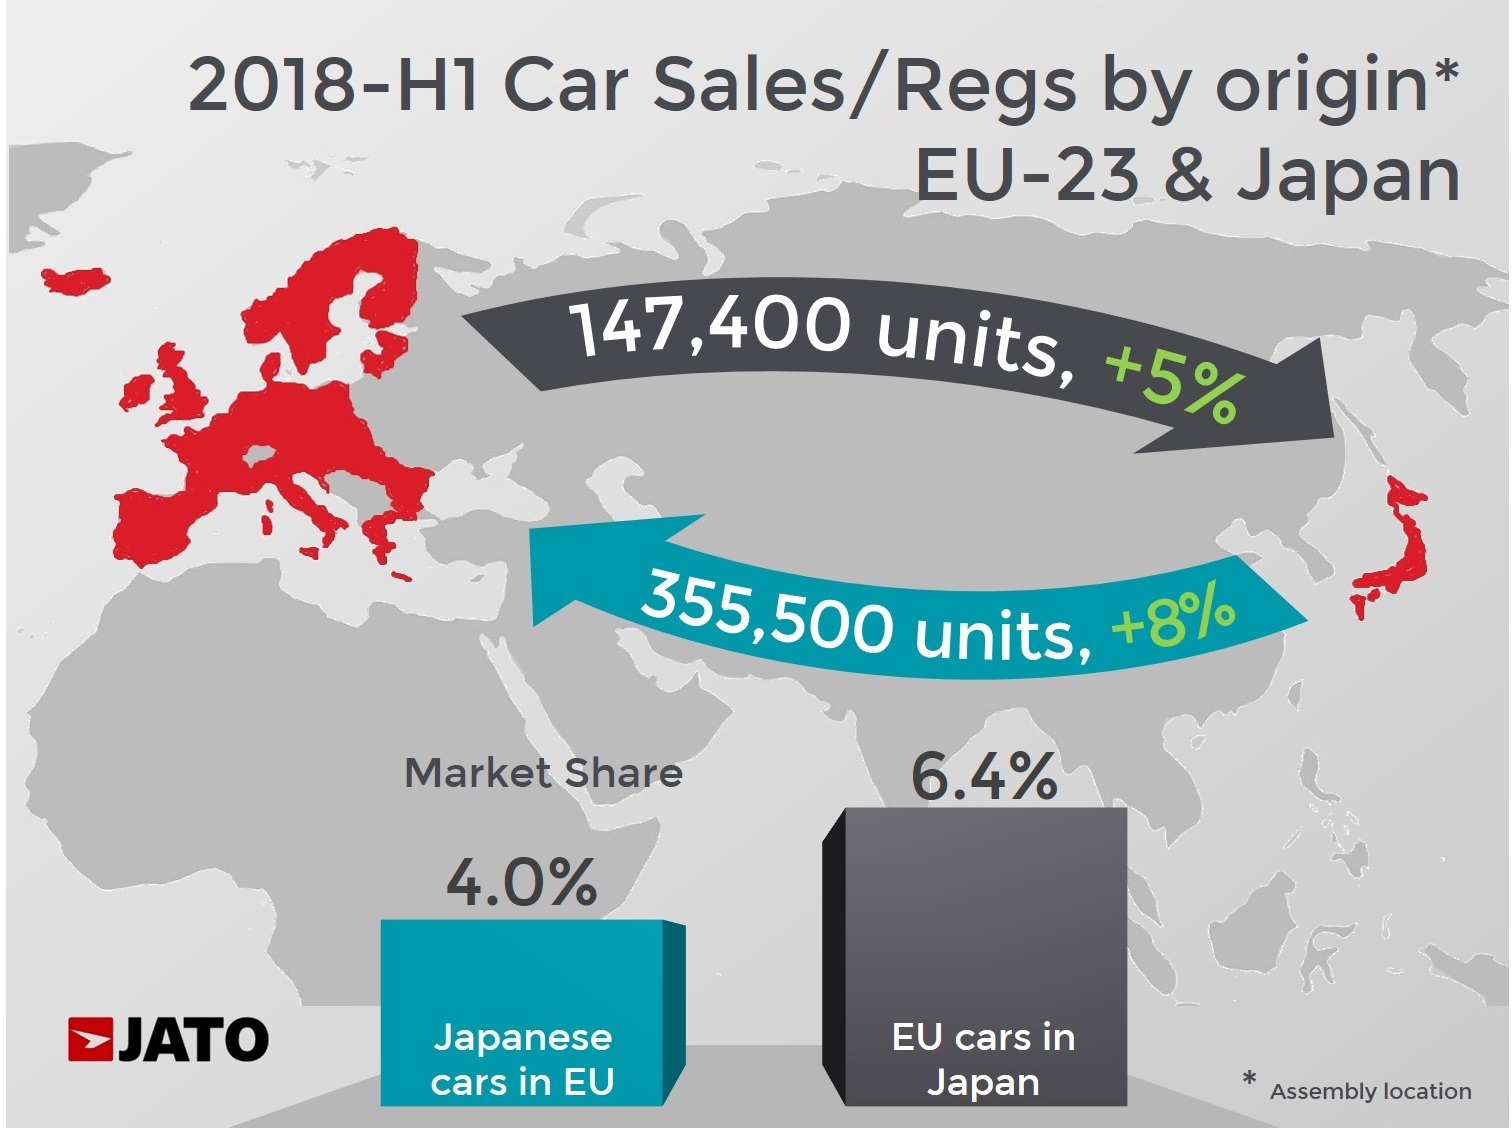 Small Midsize Japanese Car Makers To Benefit The Most From Eu